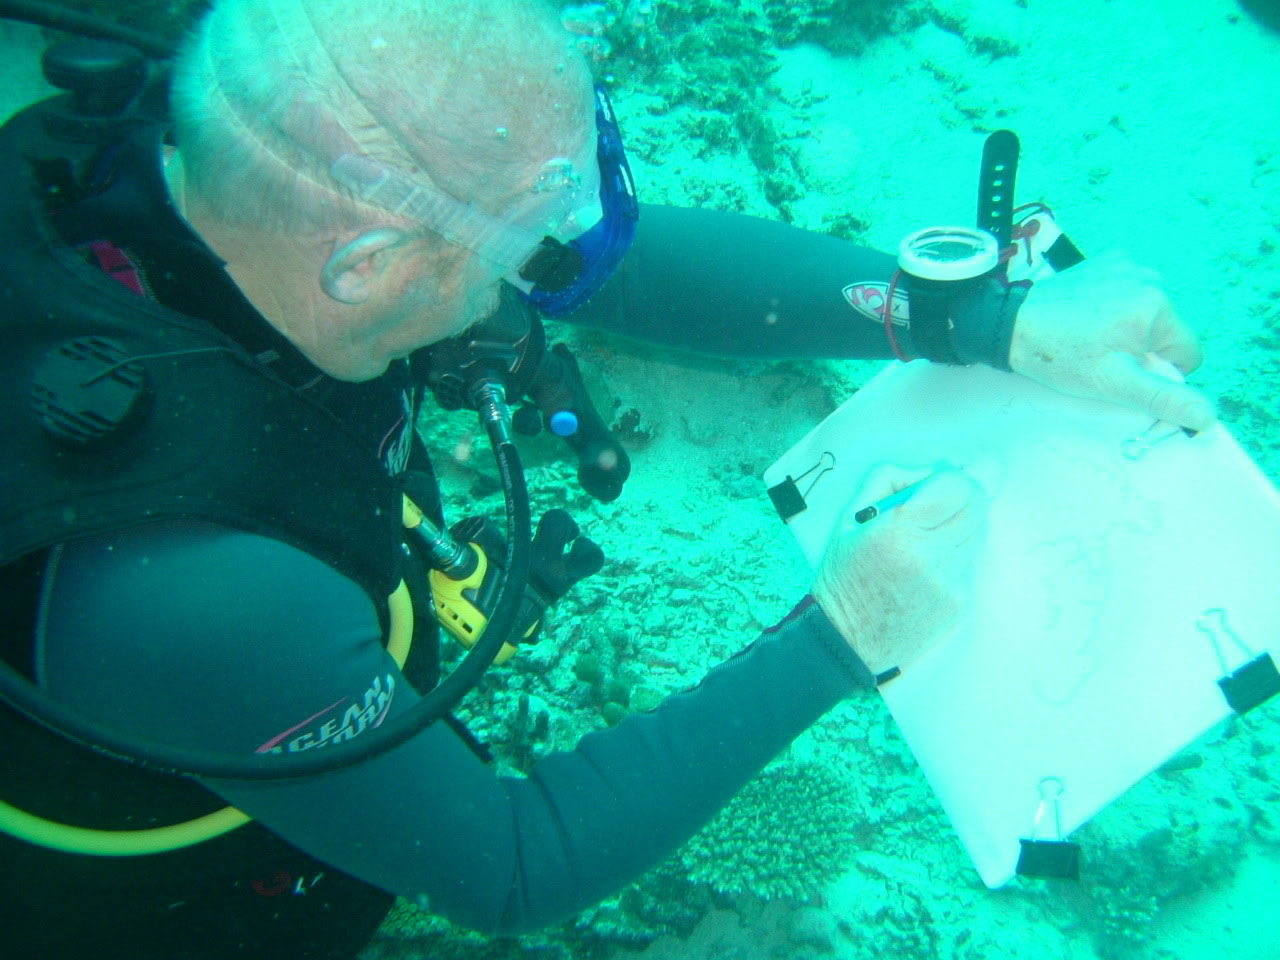 Tony Foster drawing underwater in the Maldives, 2007. Photo by Glenn Parrot. Courtesy of Foster Art & Wilderness Foundation.